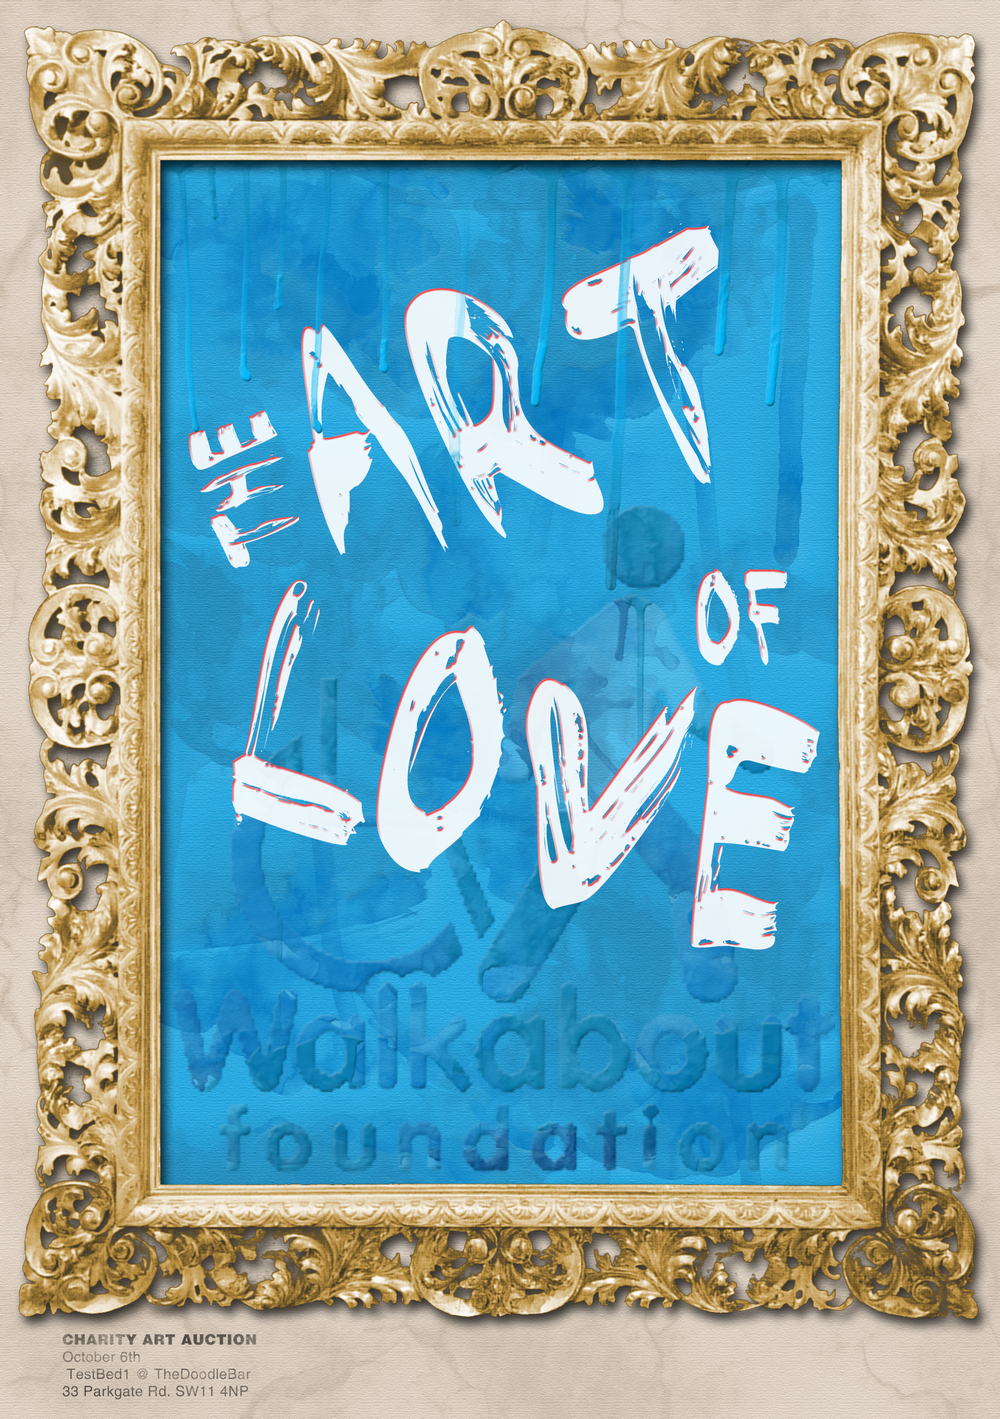 2012-08-23_The Art of Love.jpg